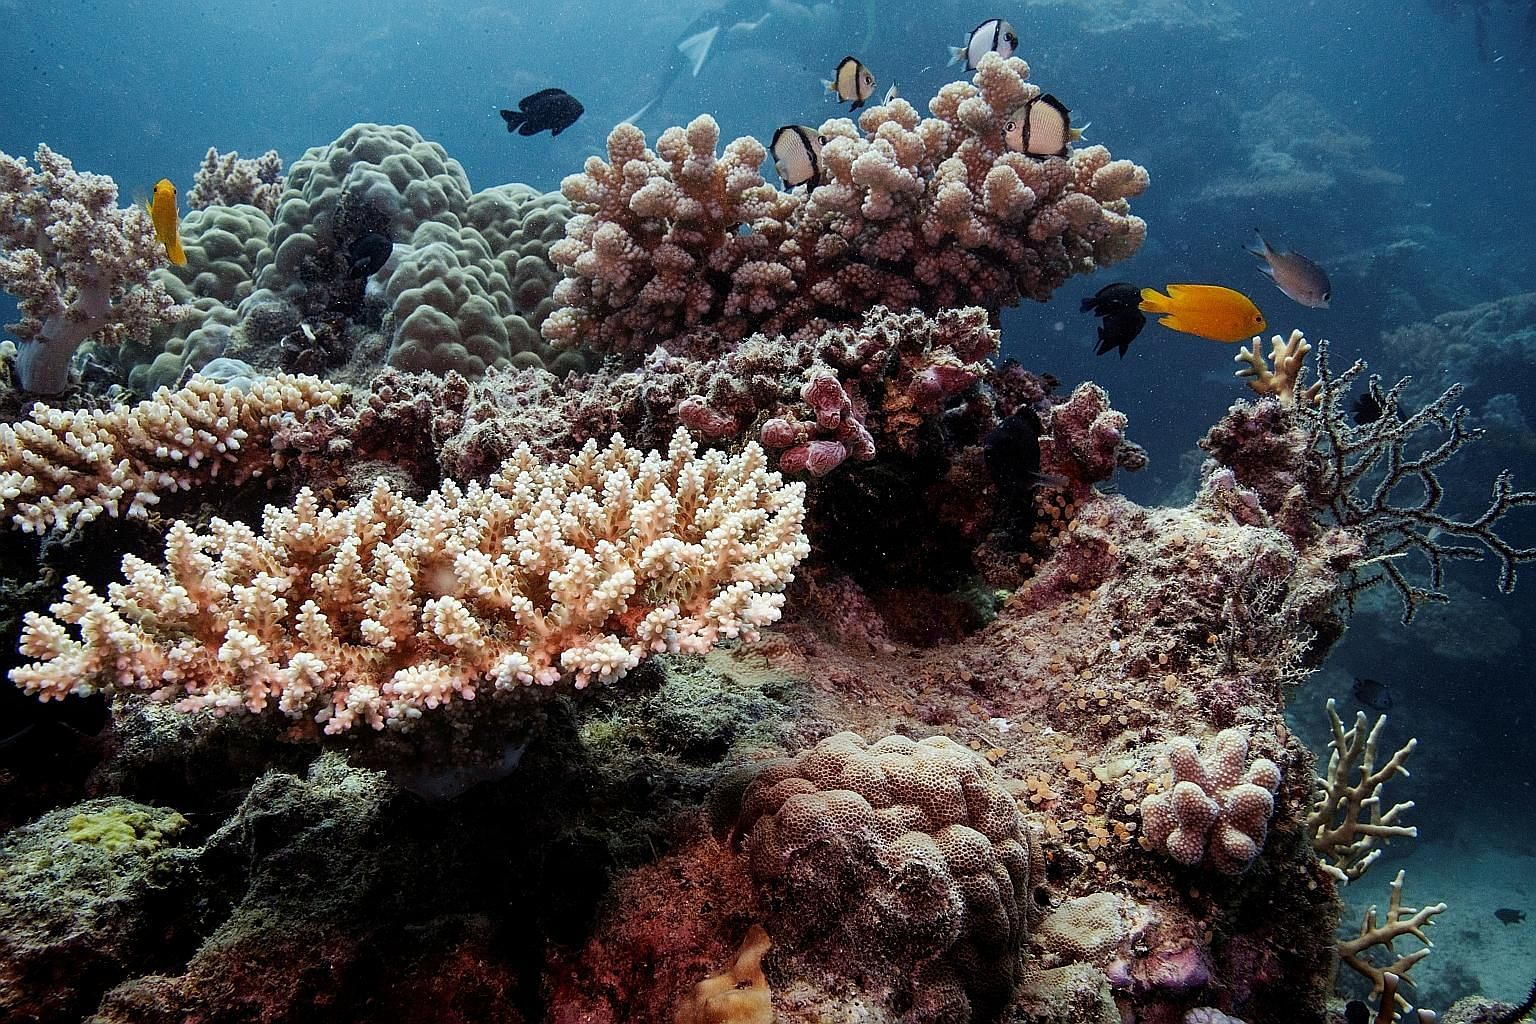 Recovering coral colonies in the Great Barrier Reef off the coast of Cairns, Australia, last October. Back-to-back bleaching events in 2016 and 2017 caused up to half of all shallow water corals in the northern and central sections of the reef to die